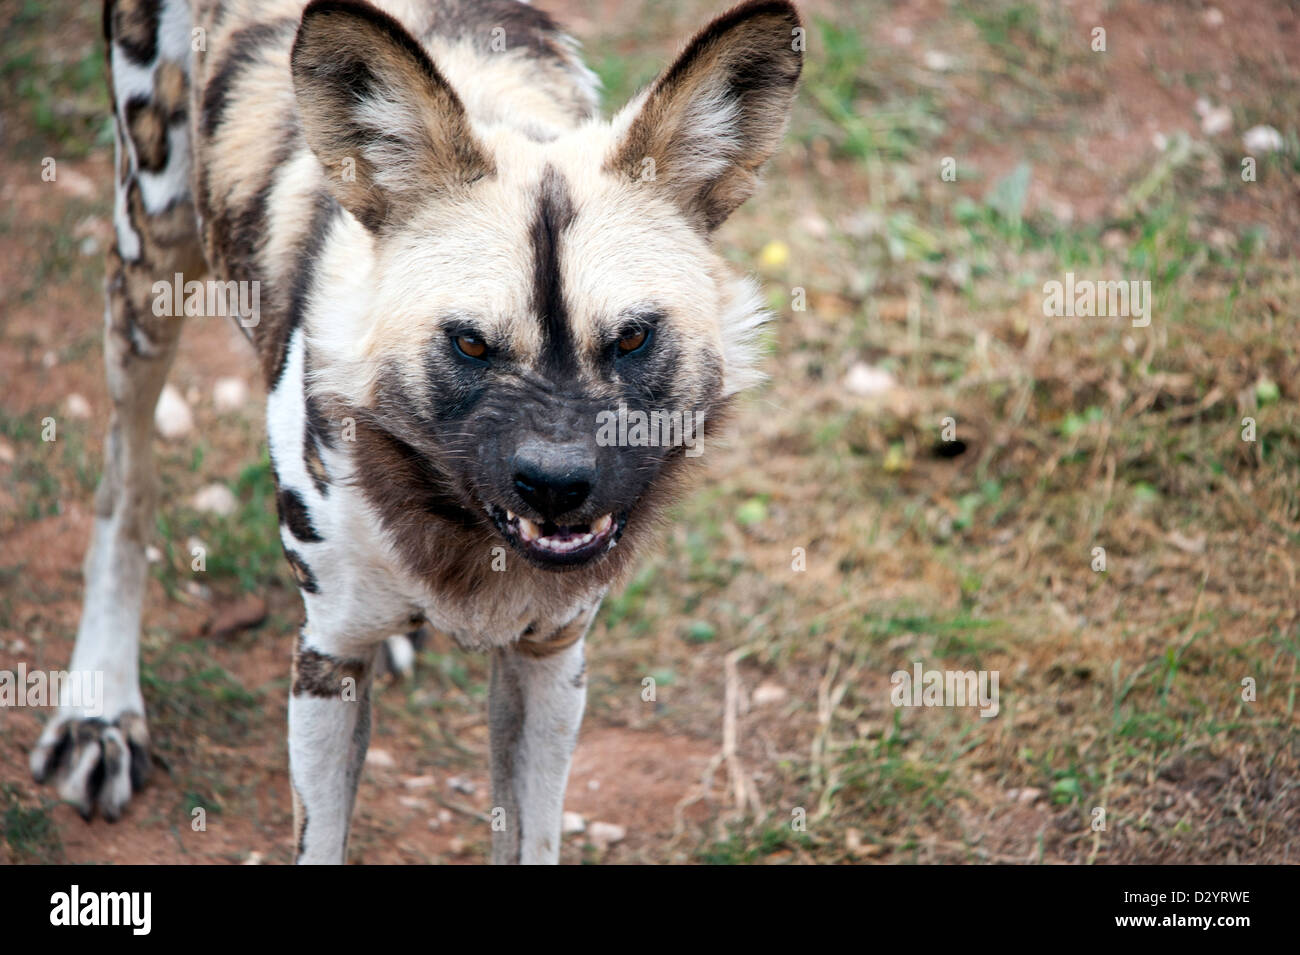 A wild African dog bares its teeth as it snarls. - Stock Image